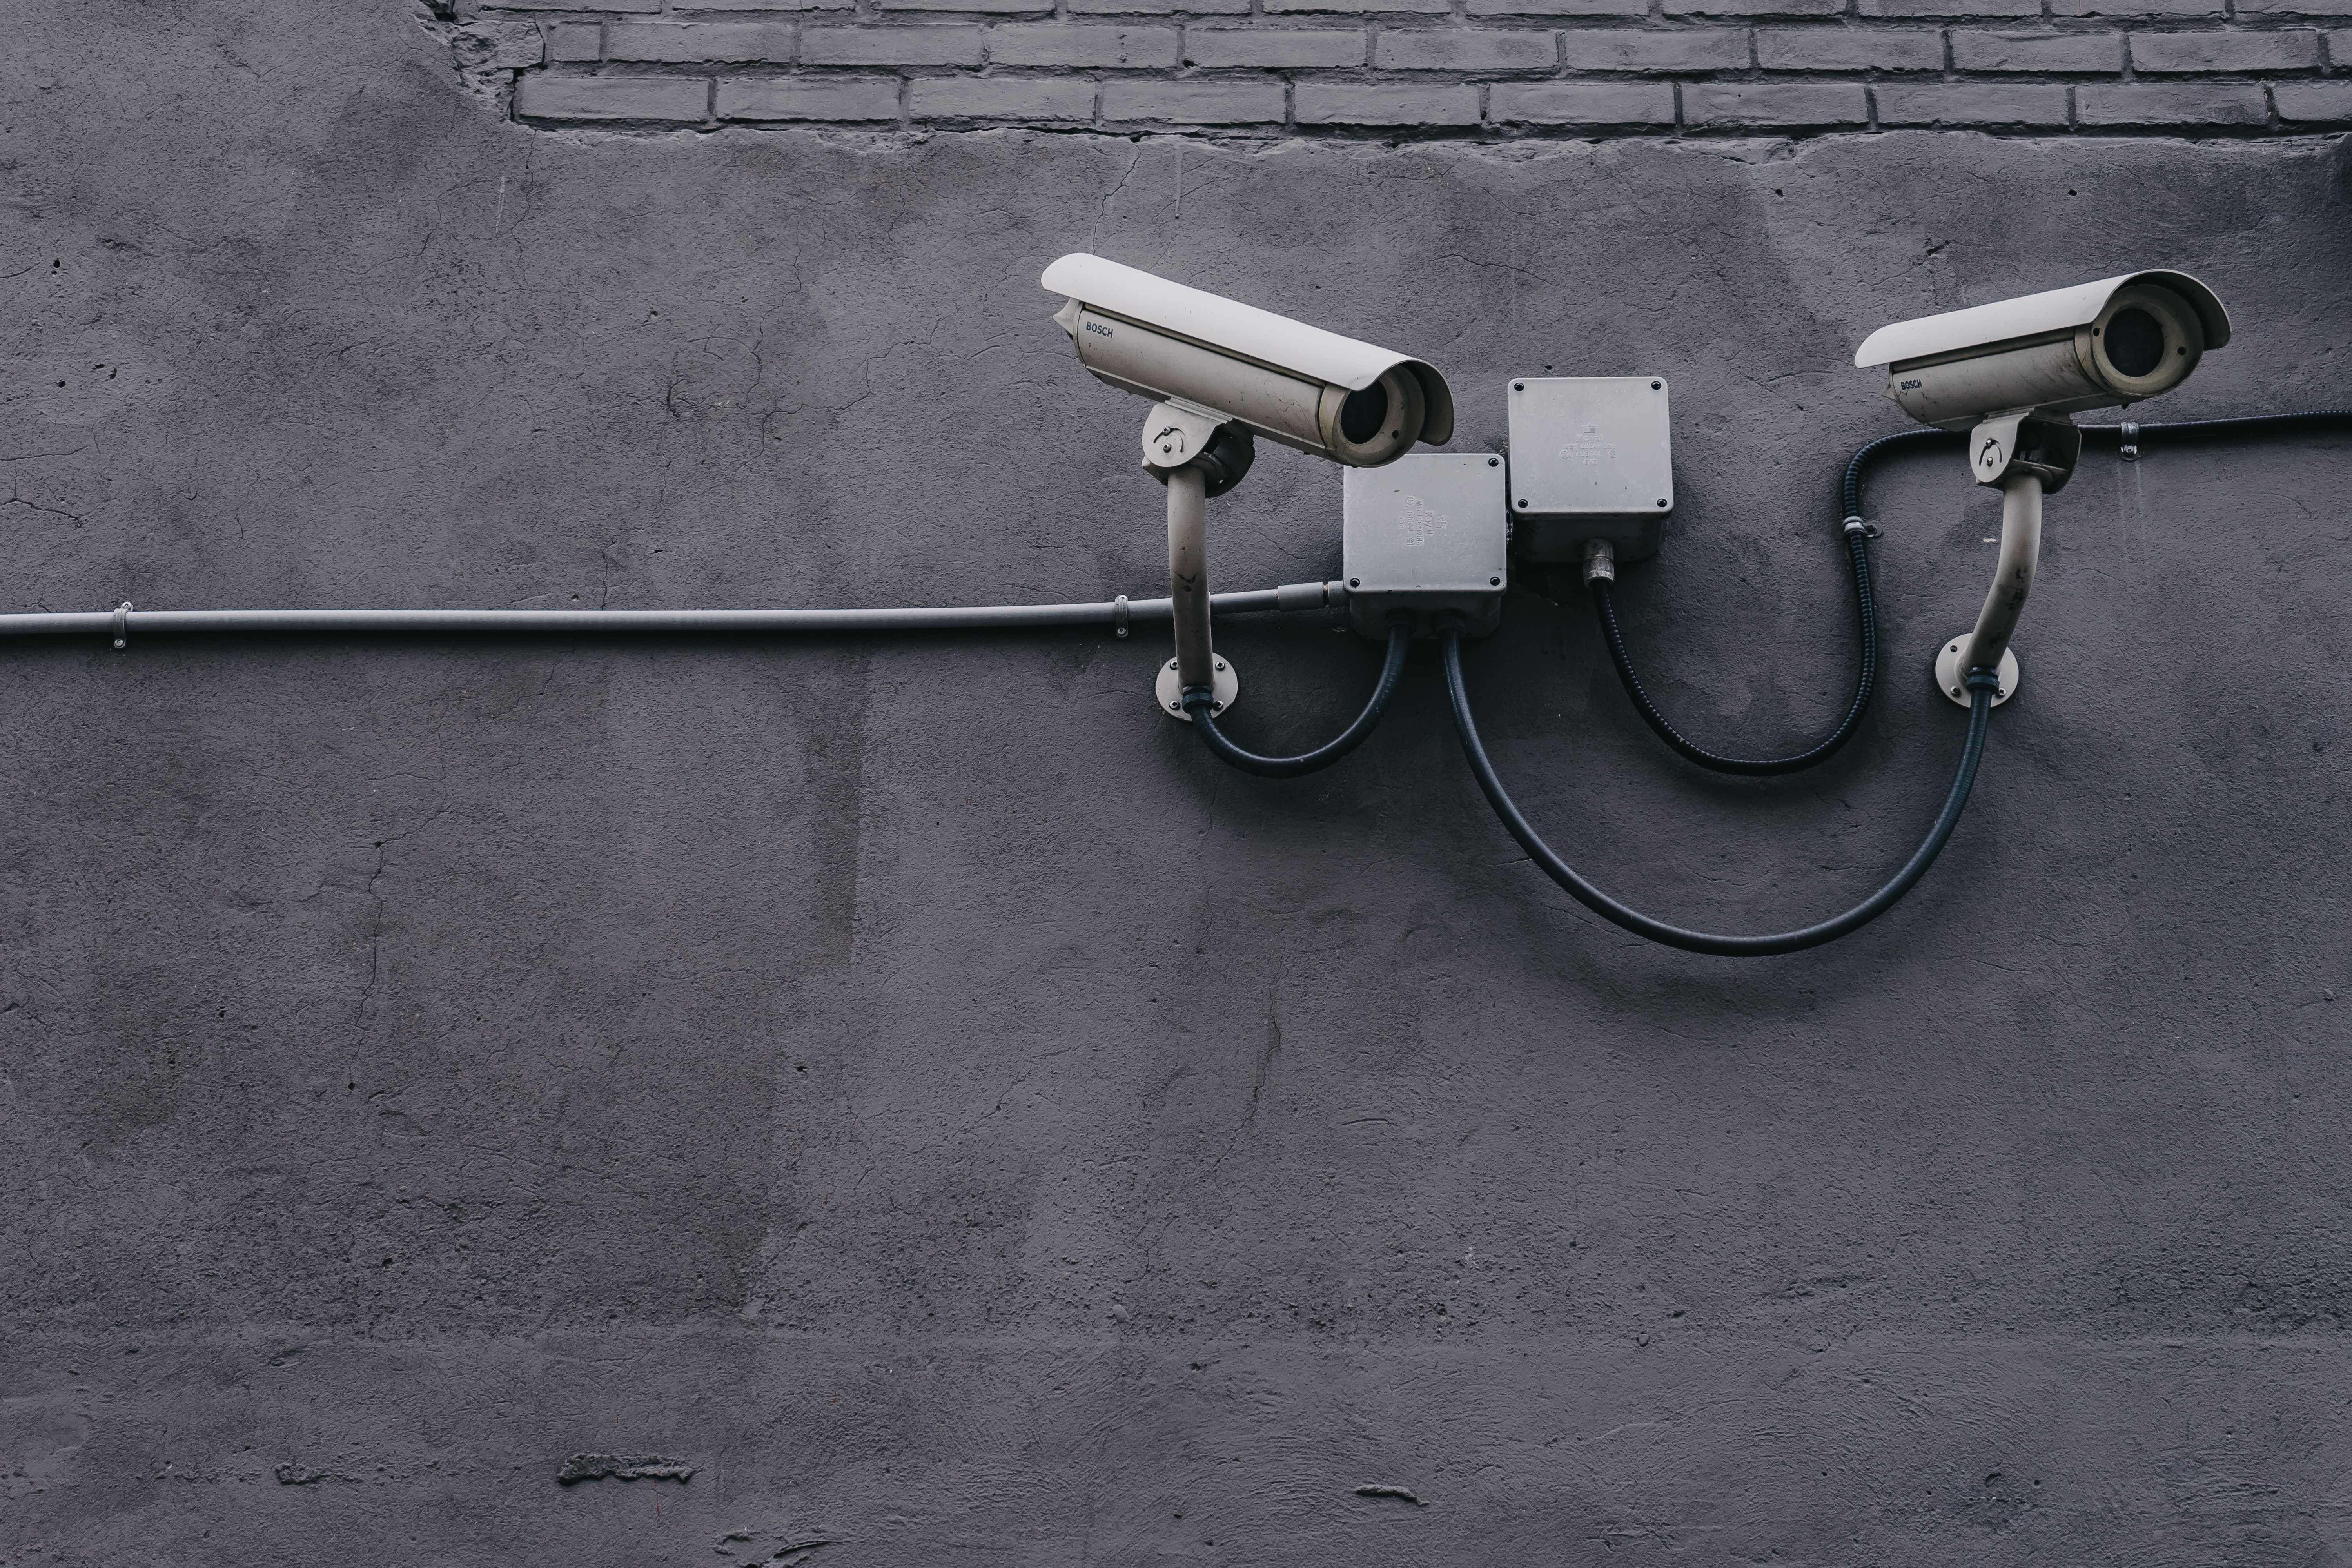 Security Related Provisions in IPR Laws